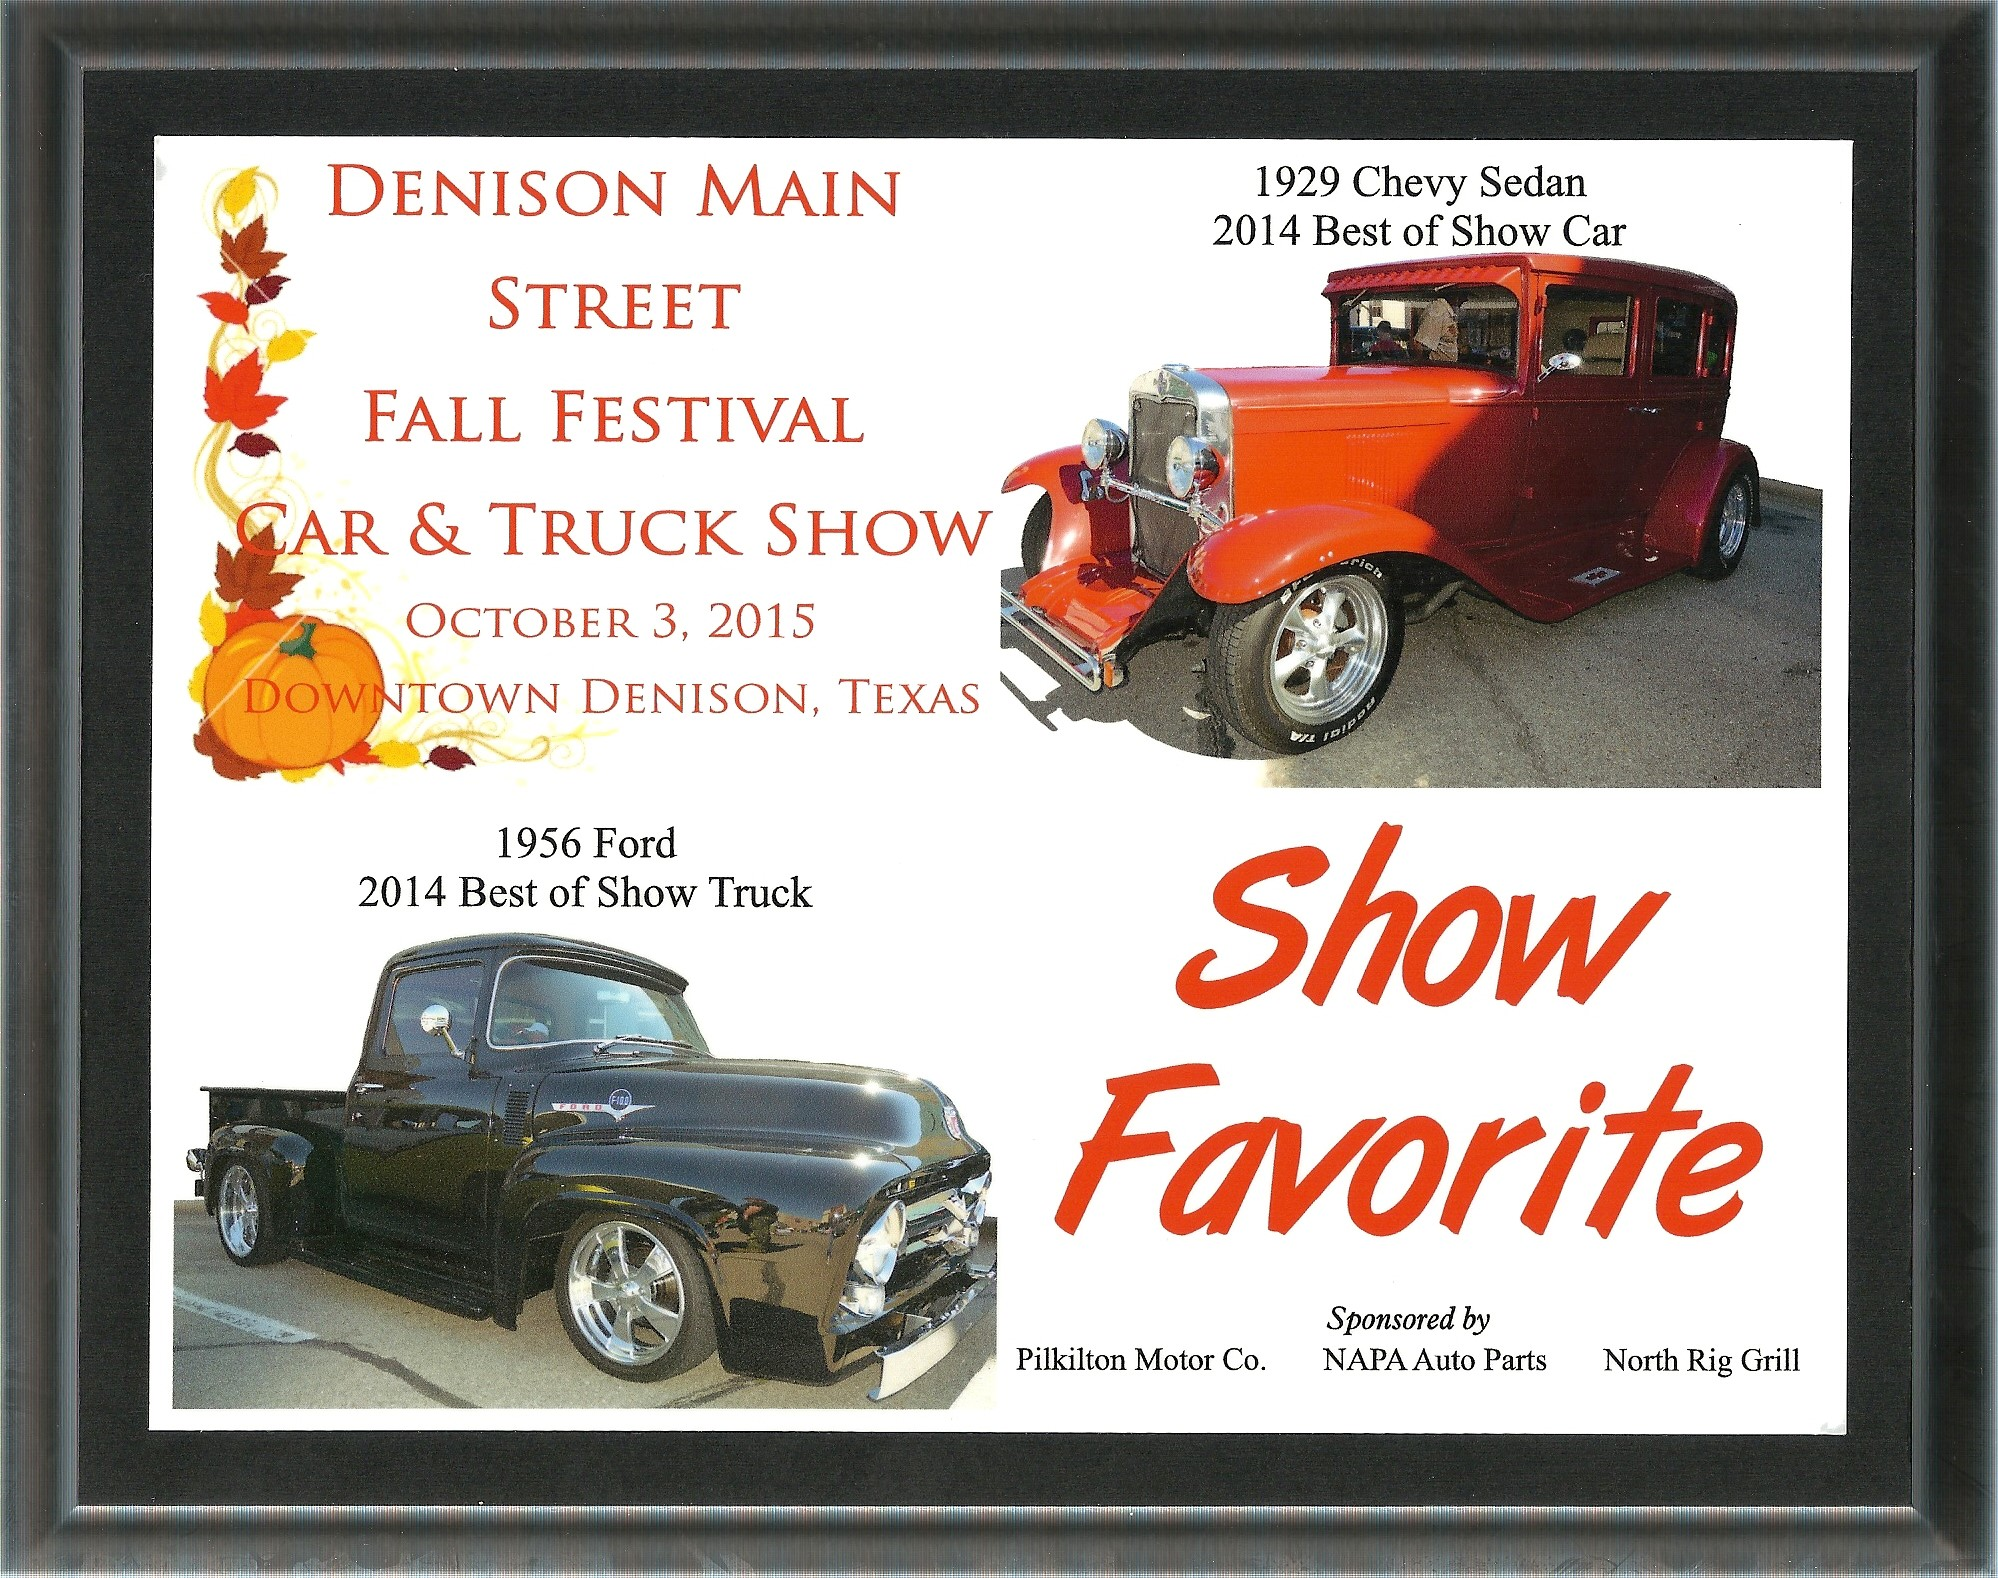 Denison Main Street Fall Festival Award